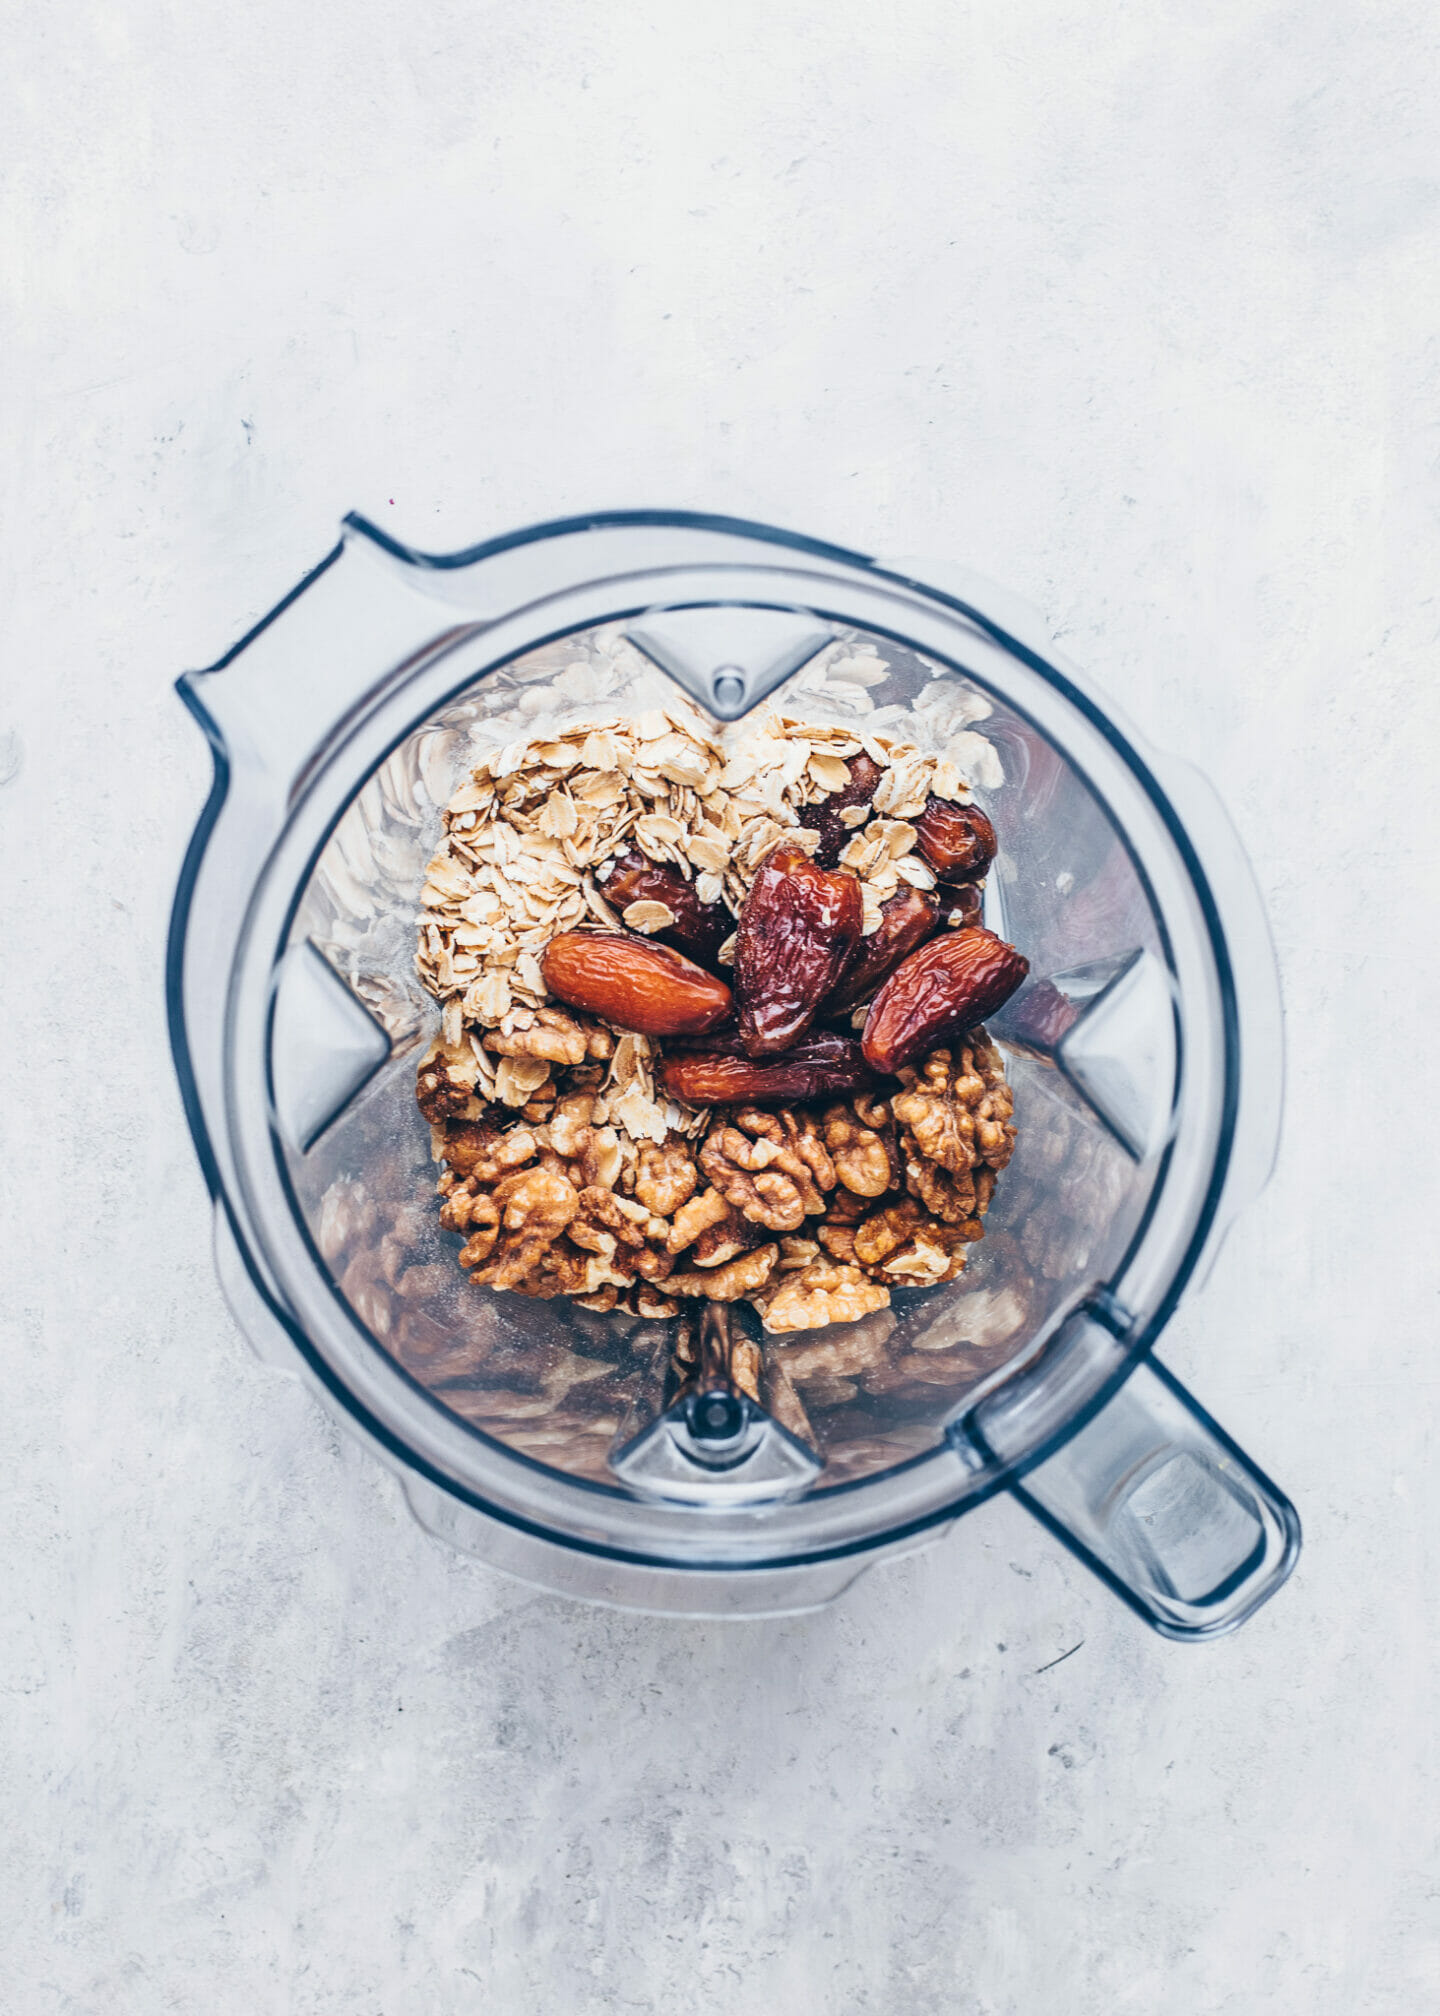 walnuts, oats, and dates in a blender for cheesecake crust